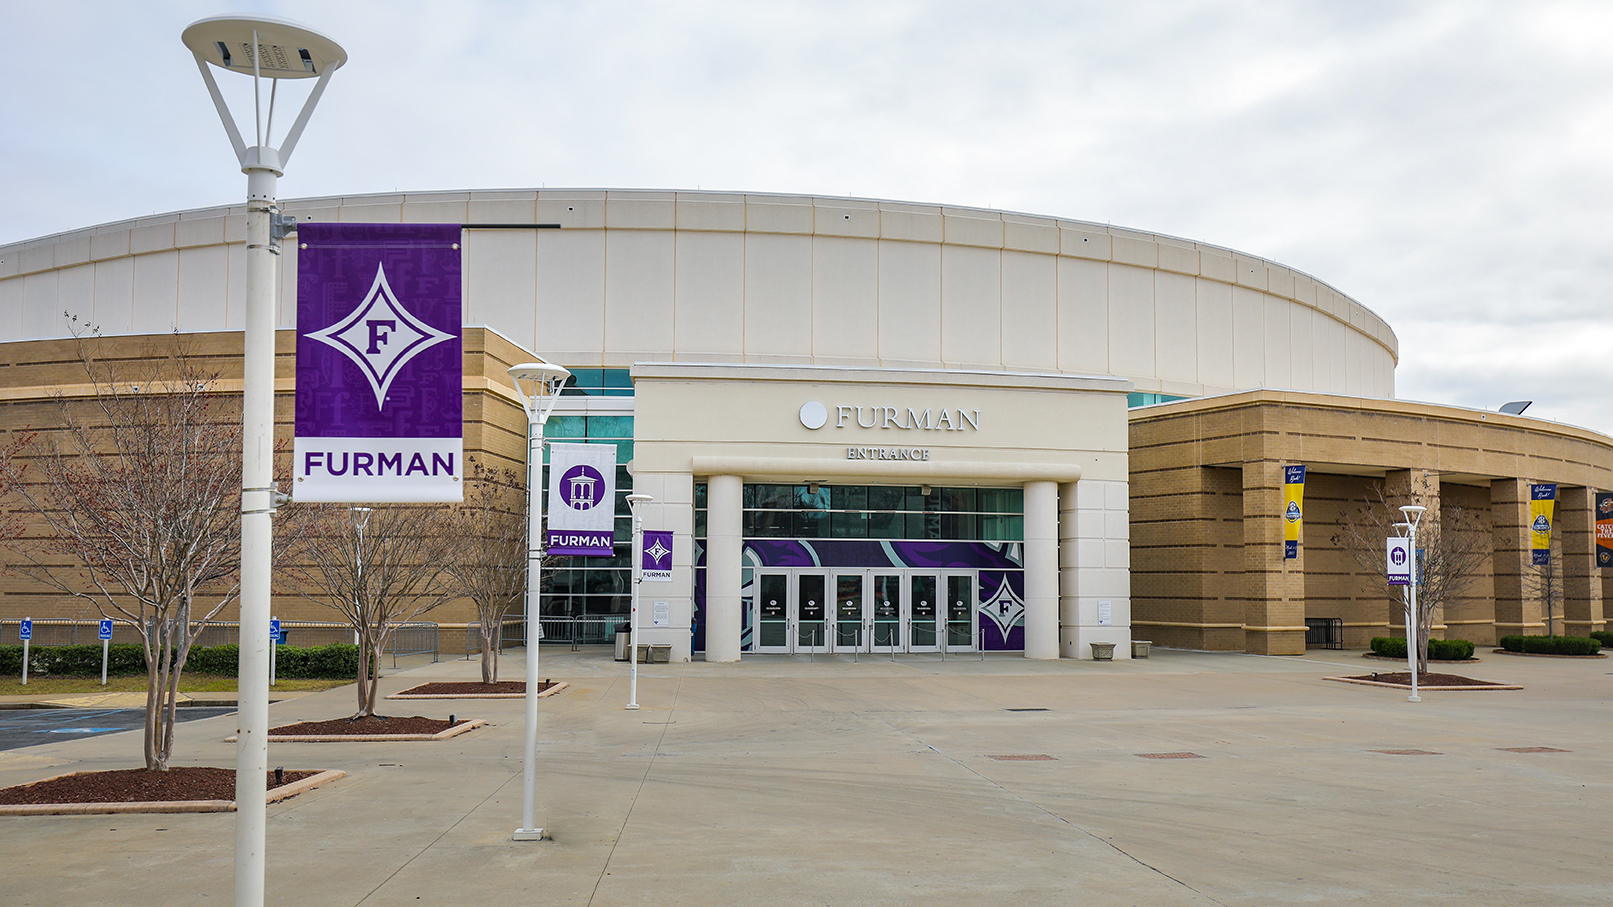 The Furman entrance at Bon Secours Wellness Arena